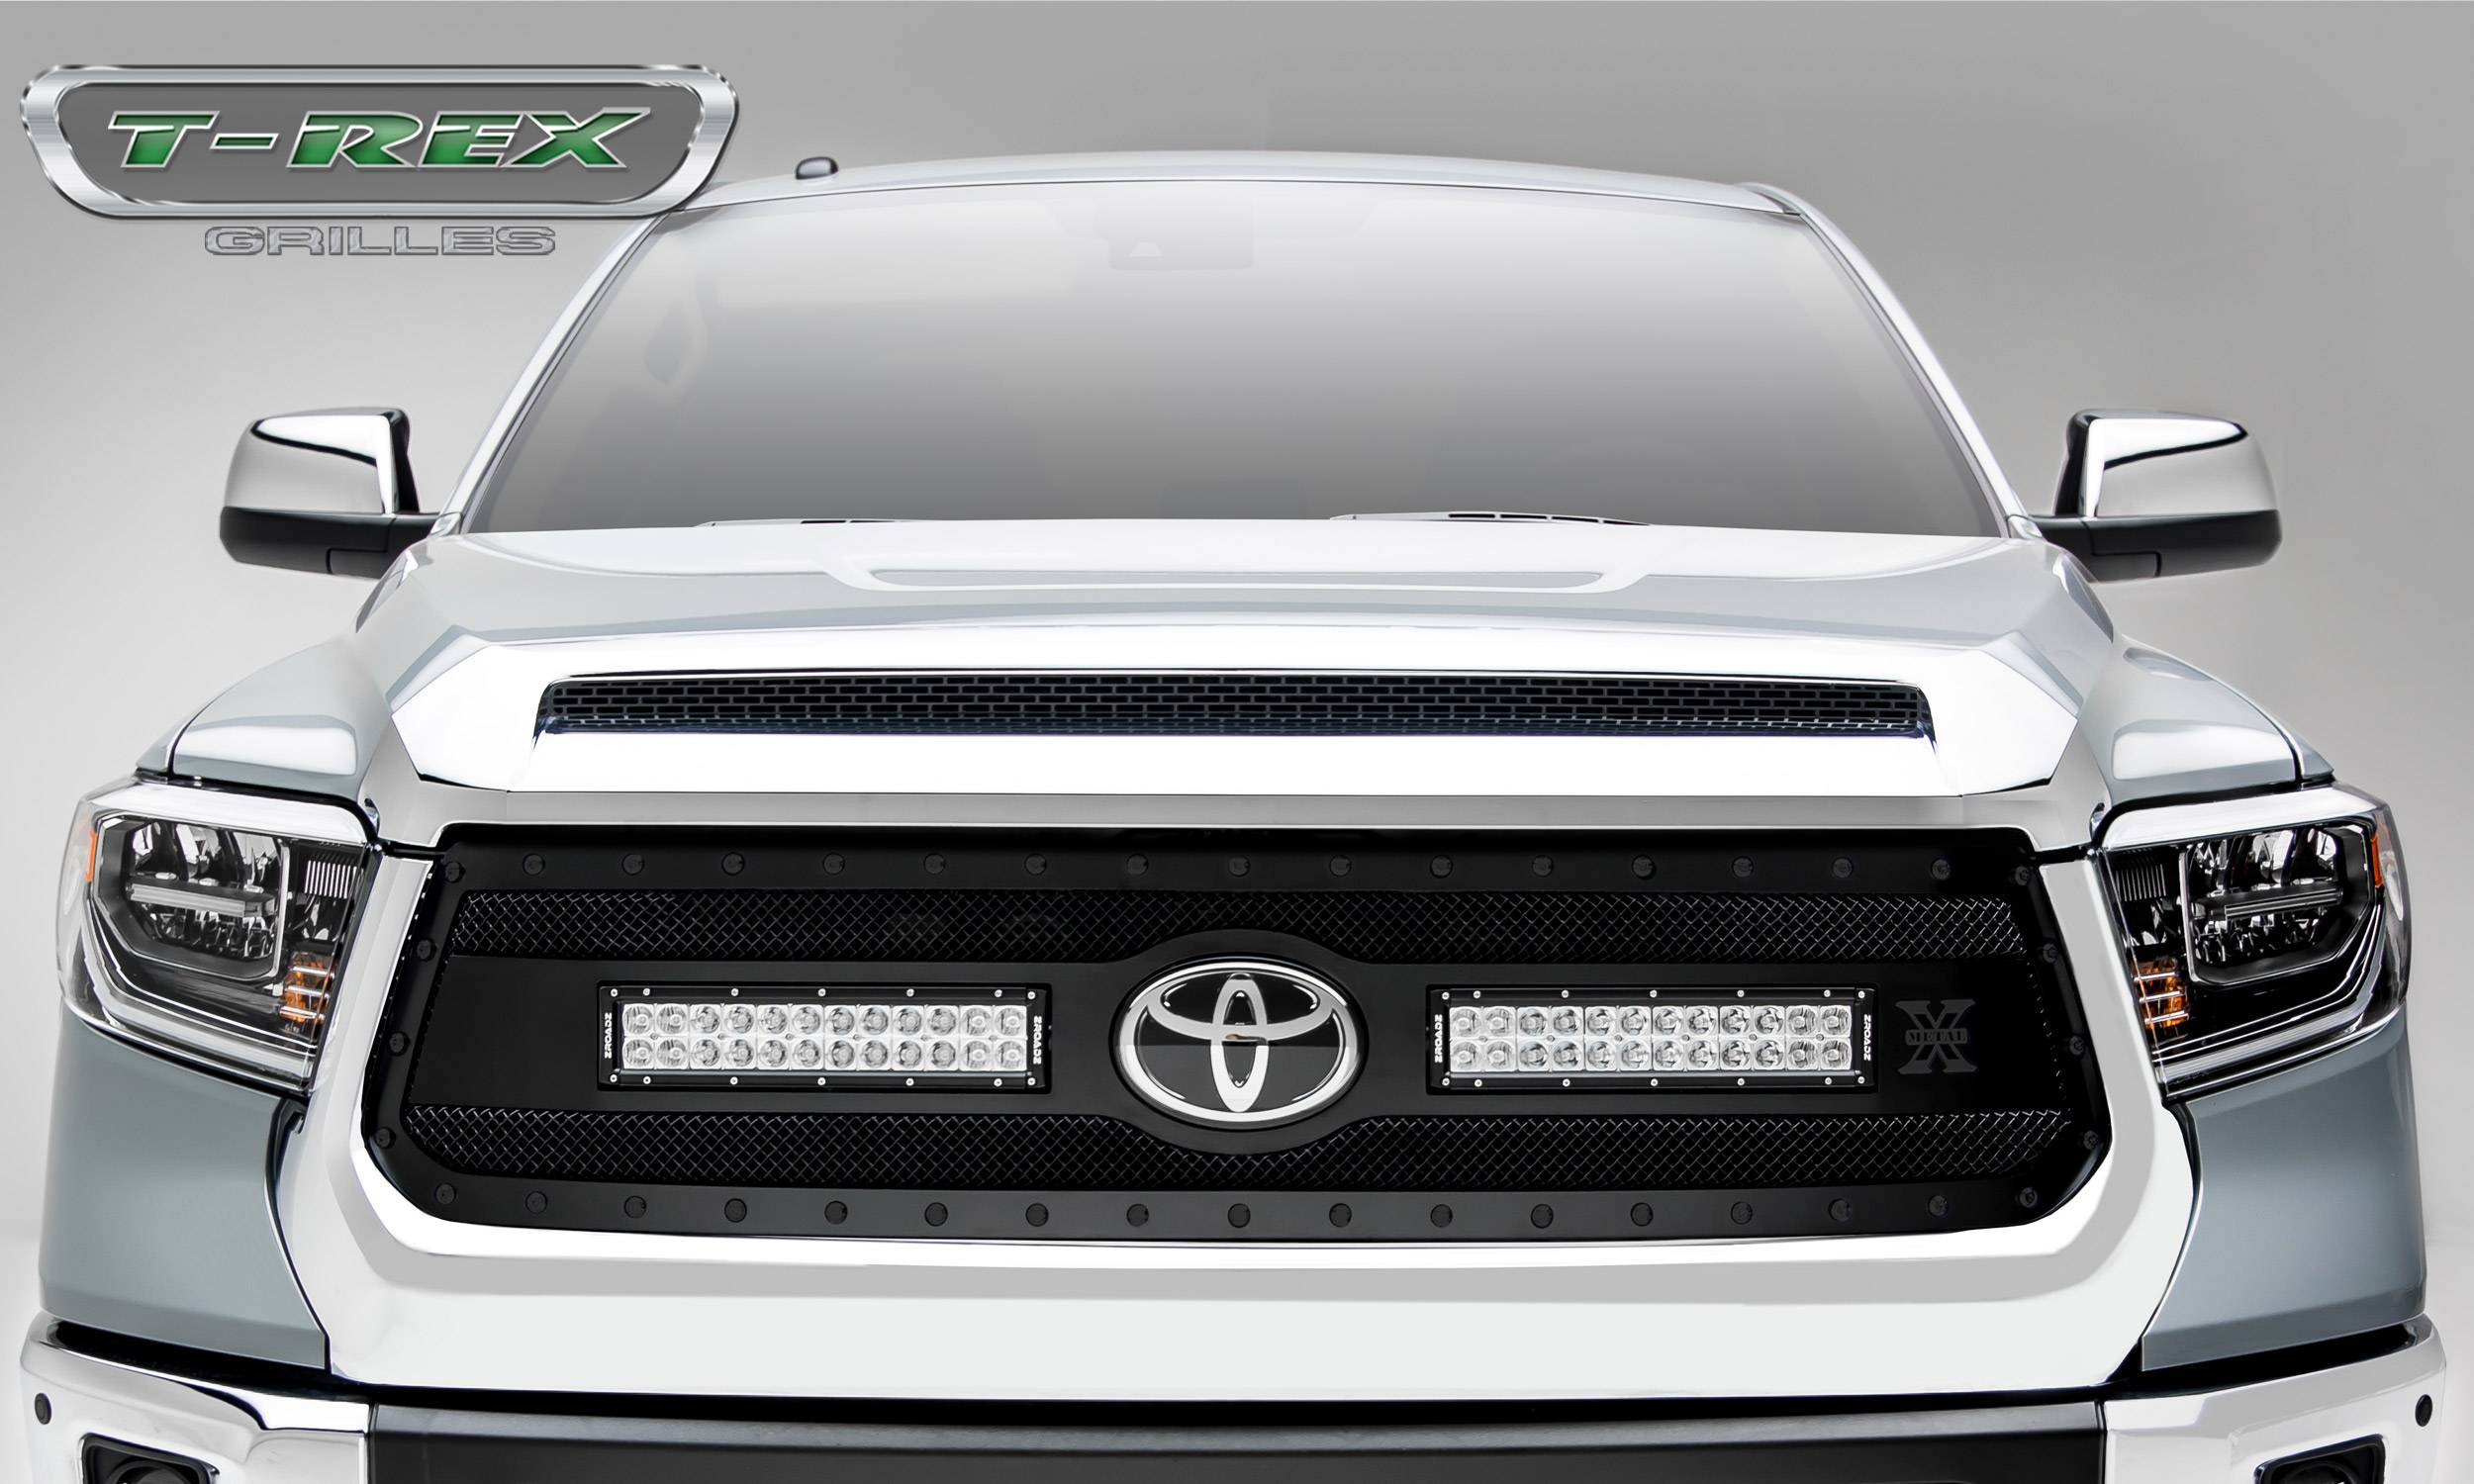 T-REX Grilles - Toyota Tundra Torch STEALTH Grille - Main Replacement w/ OE Logo Provision - Black Powdercoated Woven Wire Mesh - Pt # 6319661-BR